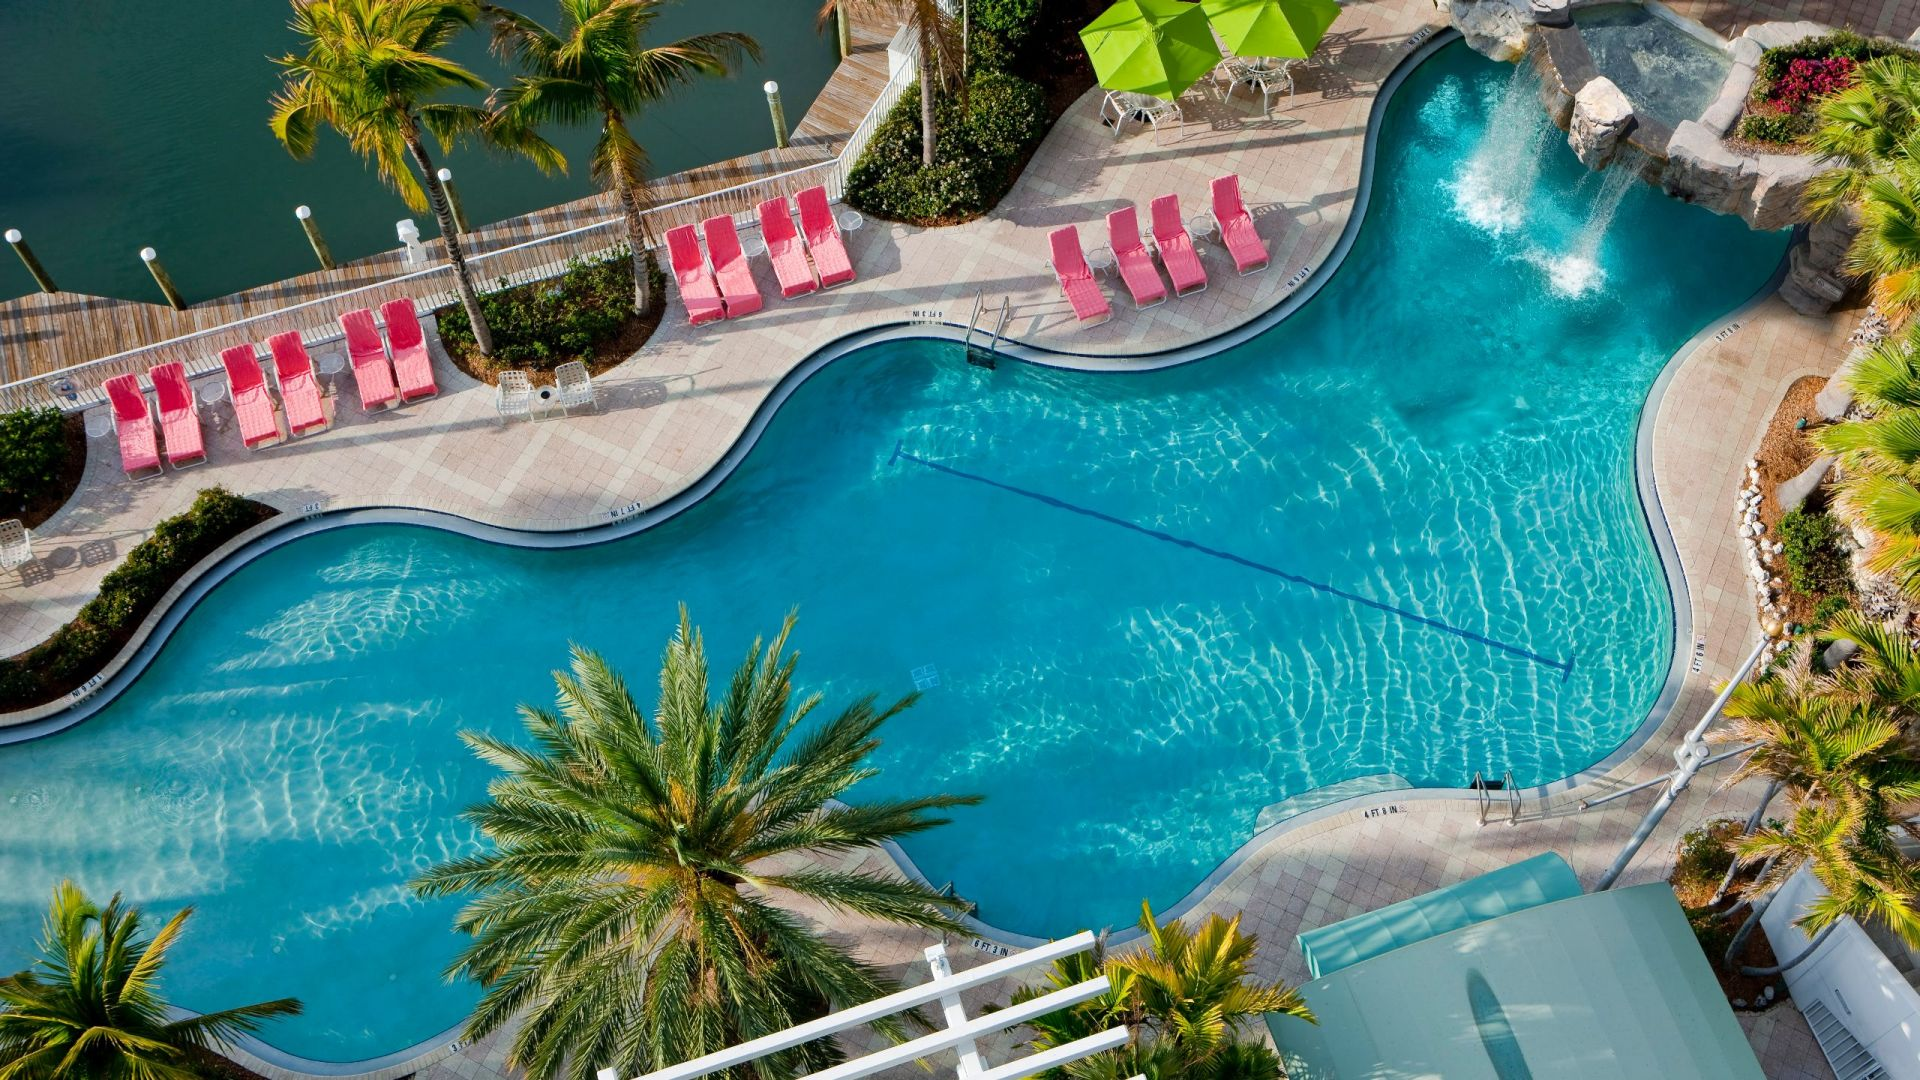 Pool Aerial Overhead Shot